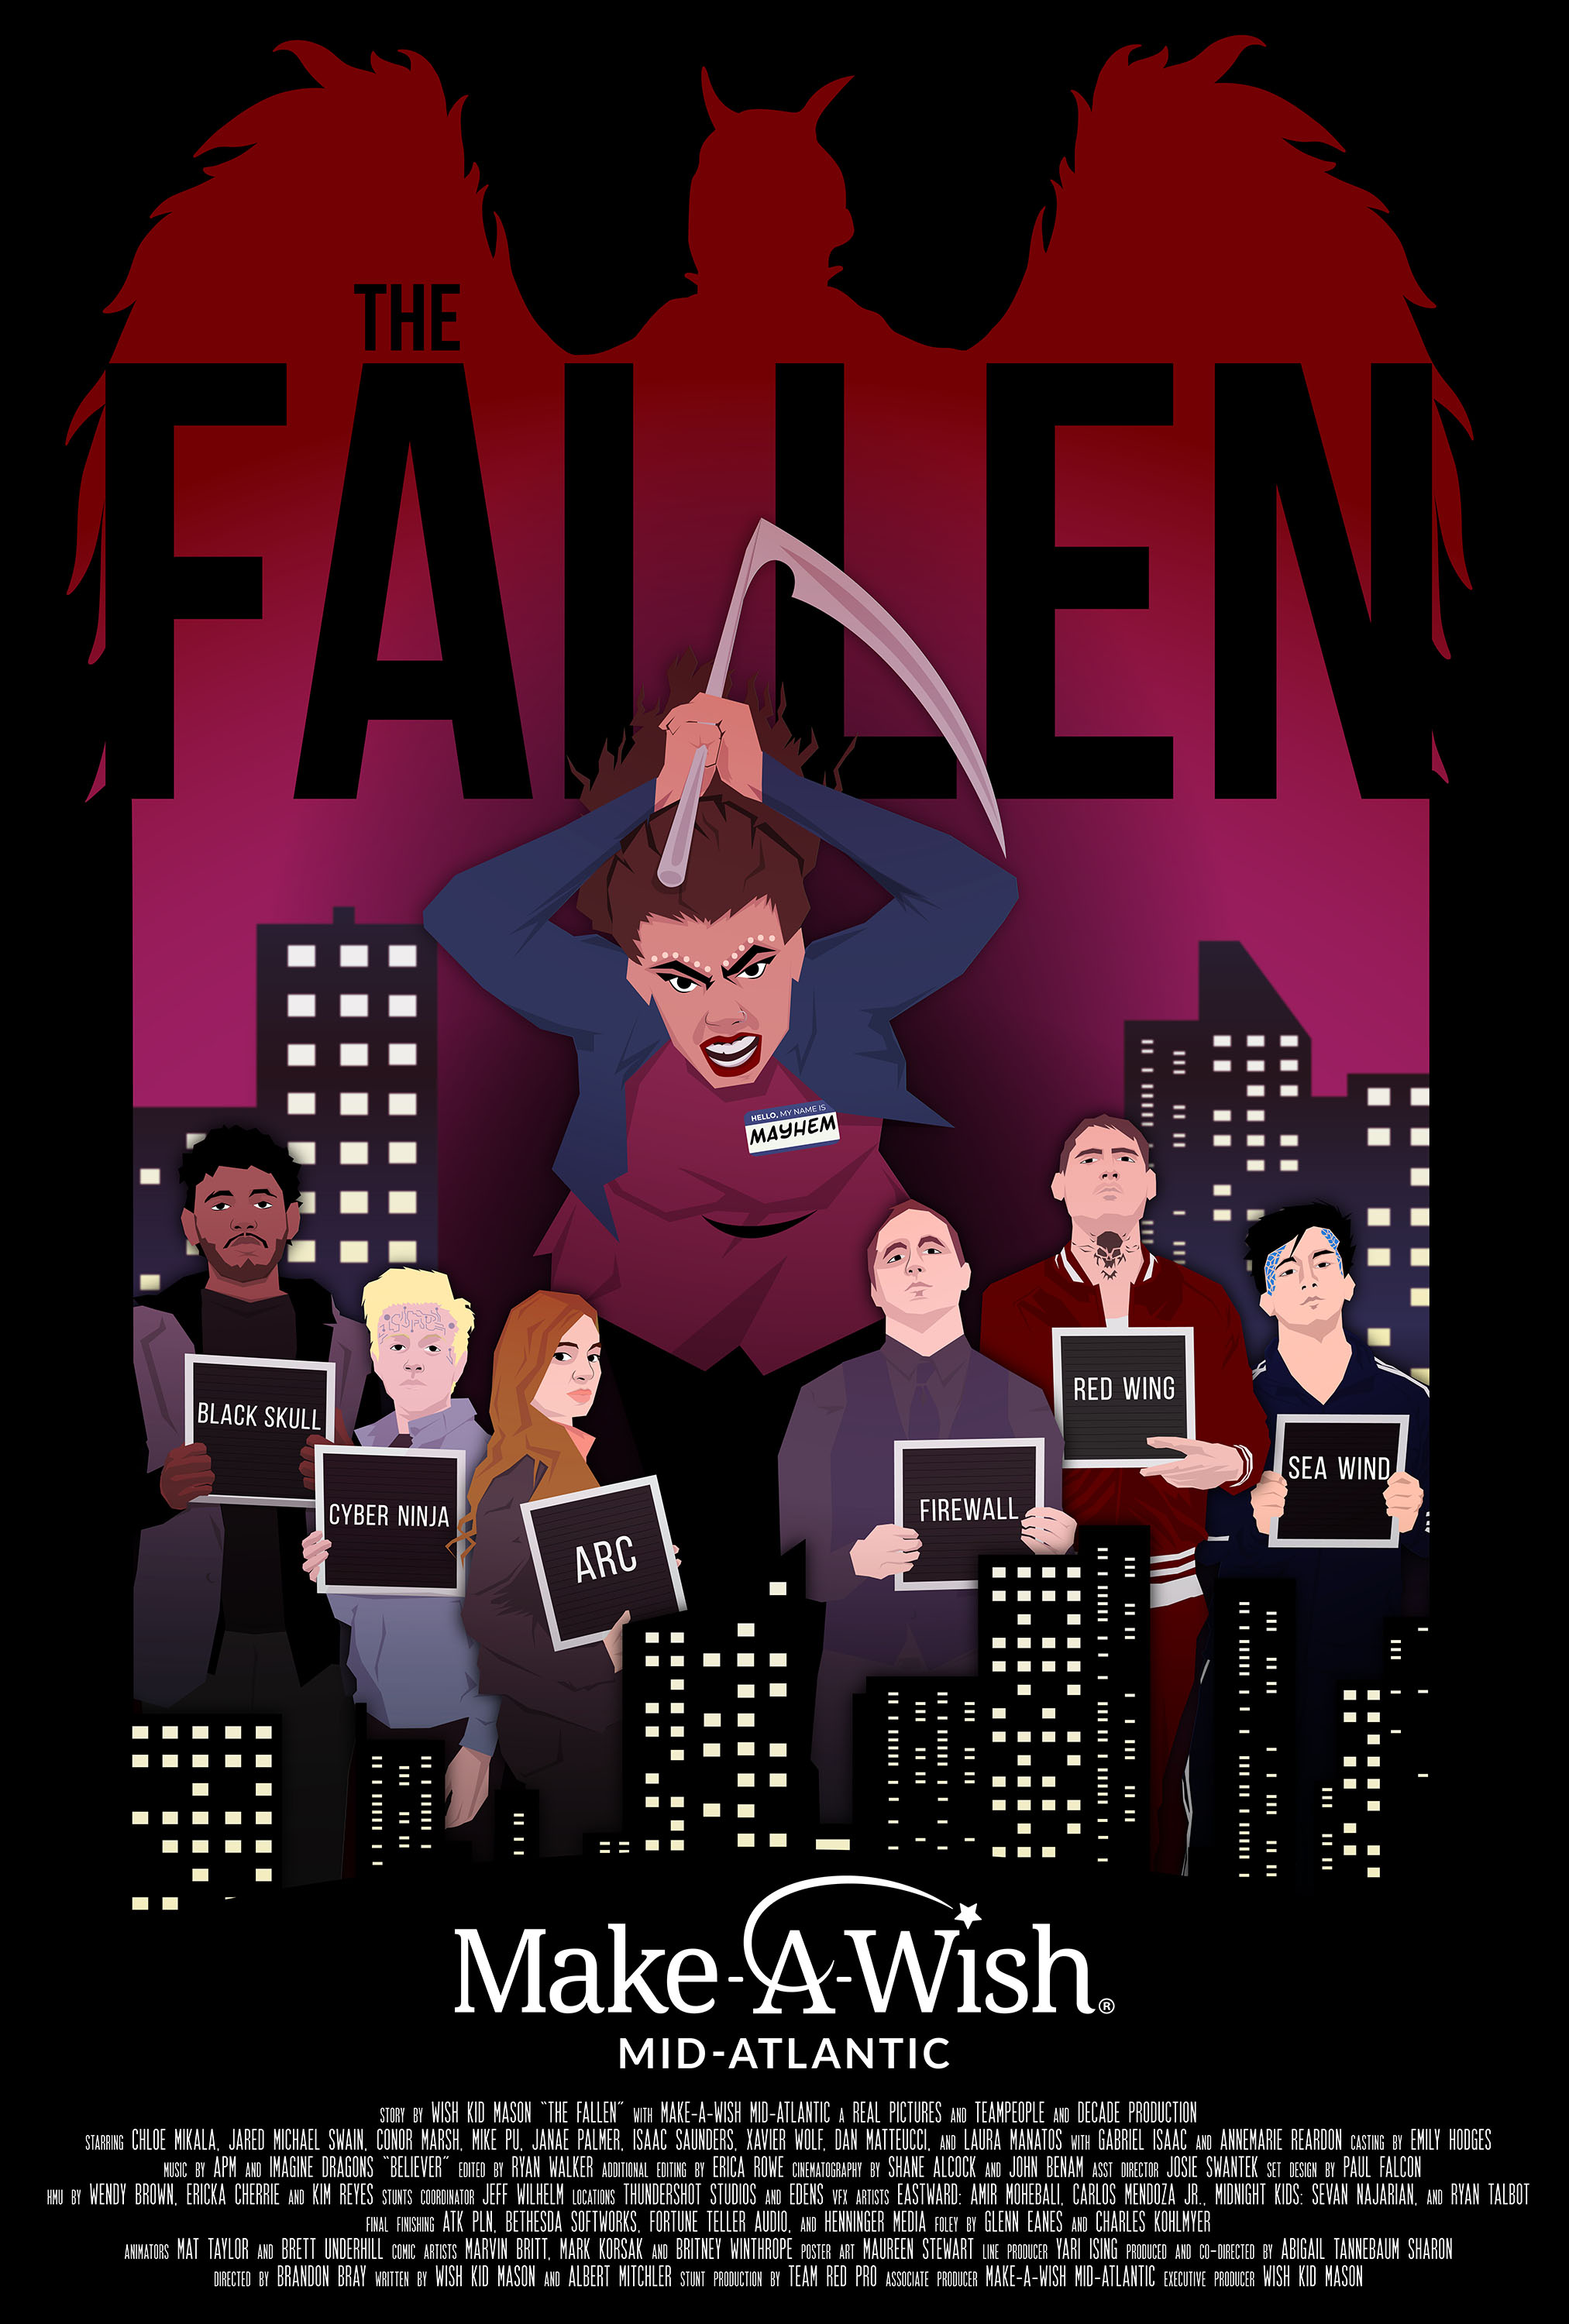 - From the mind of a boy… THE FALLEN is a team of super villains-turned-reluctant-superheroes who find themselves fighting to save their world from an intergalactic demon.CLICK HERE TO WATCH WWW.MASONSMOVIEWISH.ORG